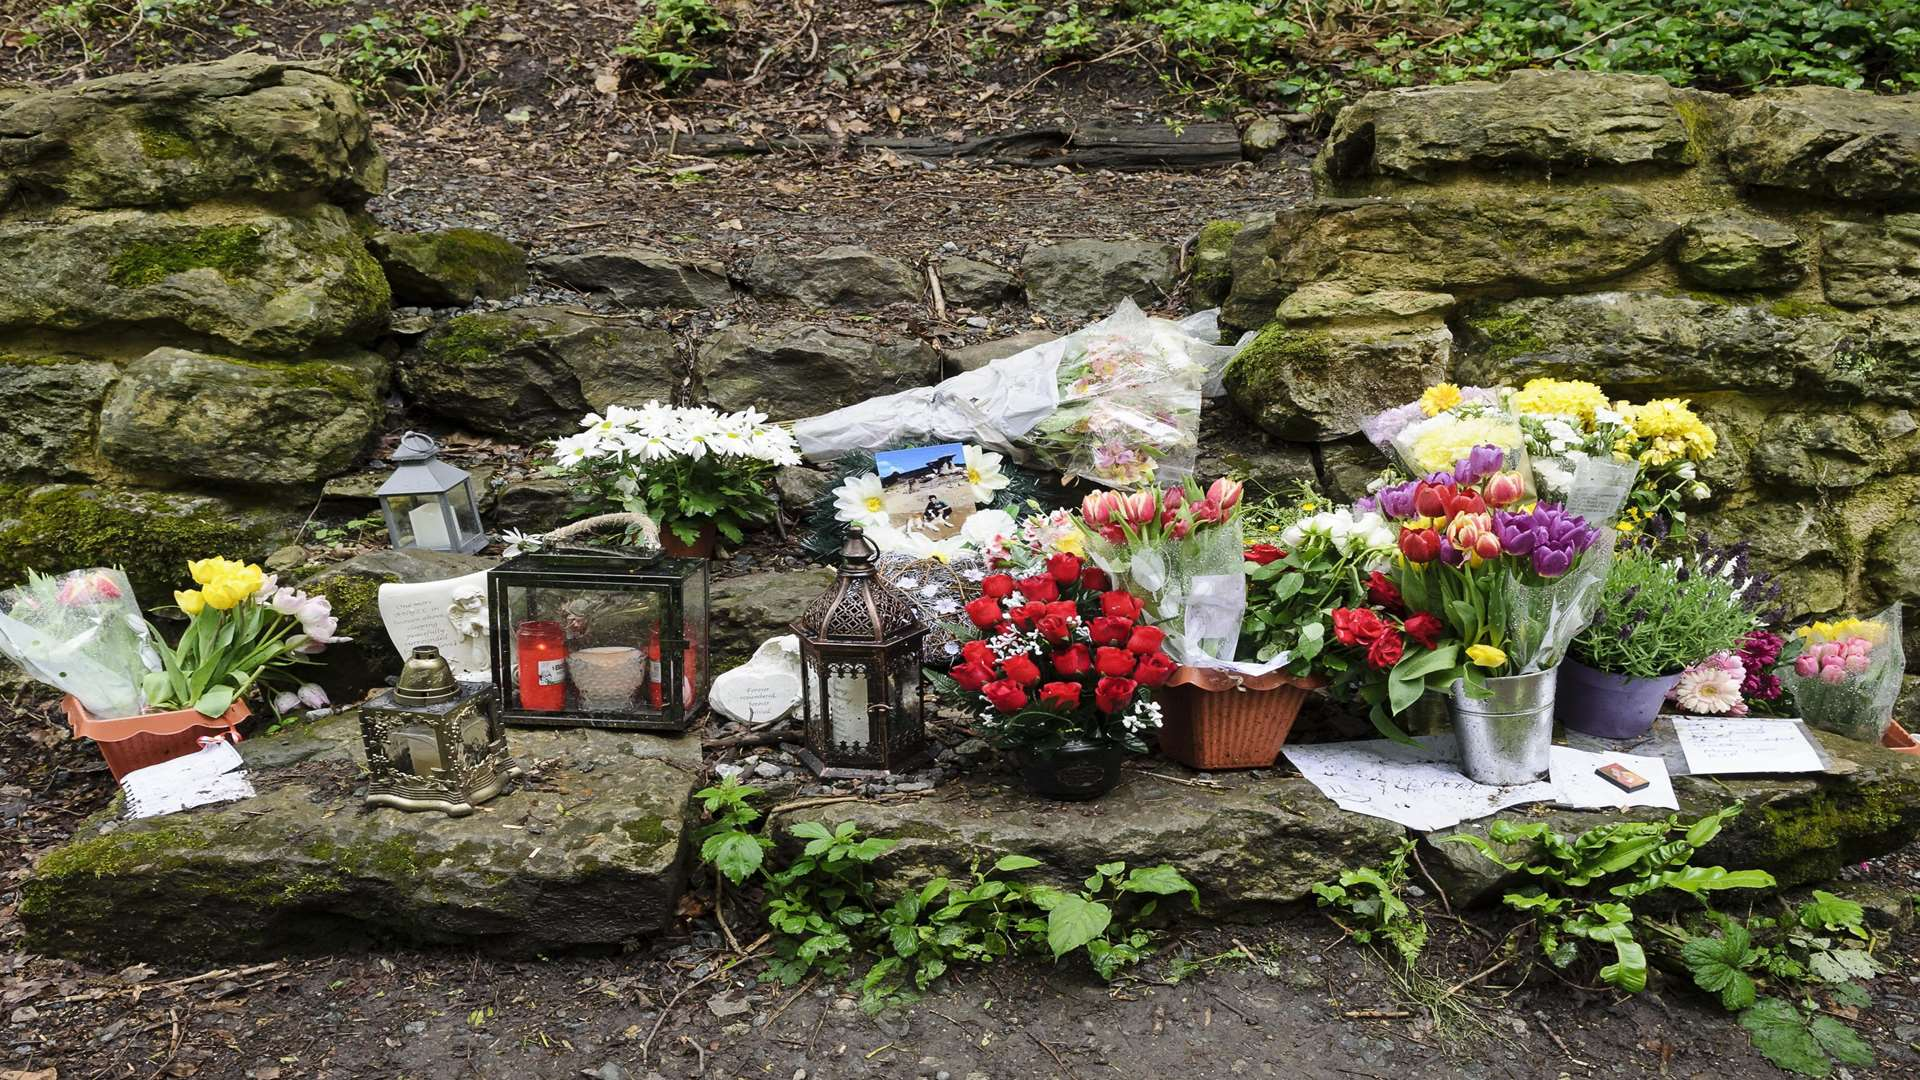 Flowers, lanterns and other items were left in tribute to 21-year-old Razvan Sirbu